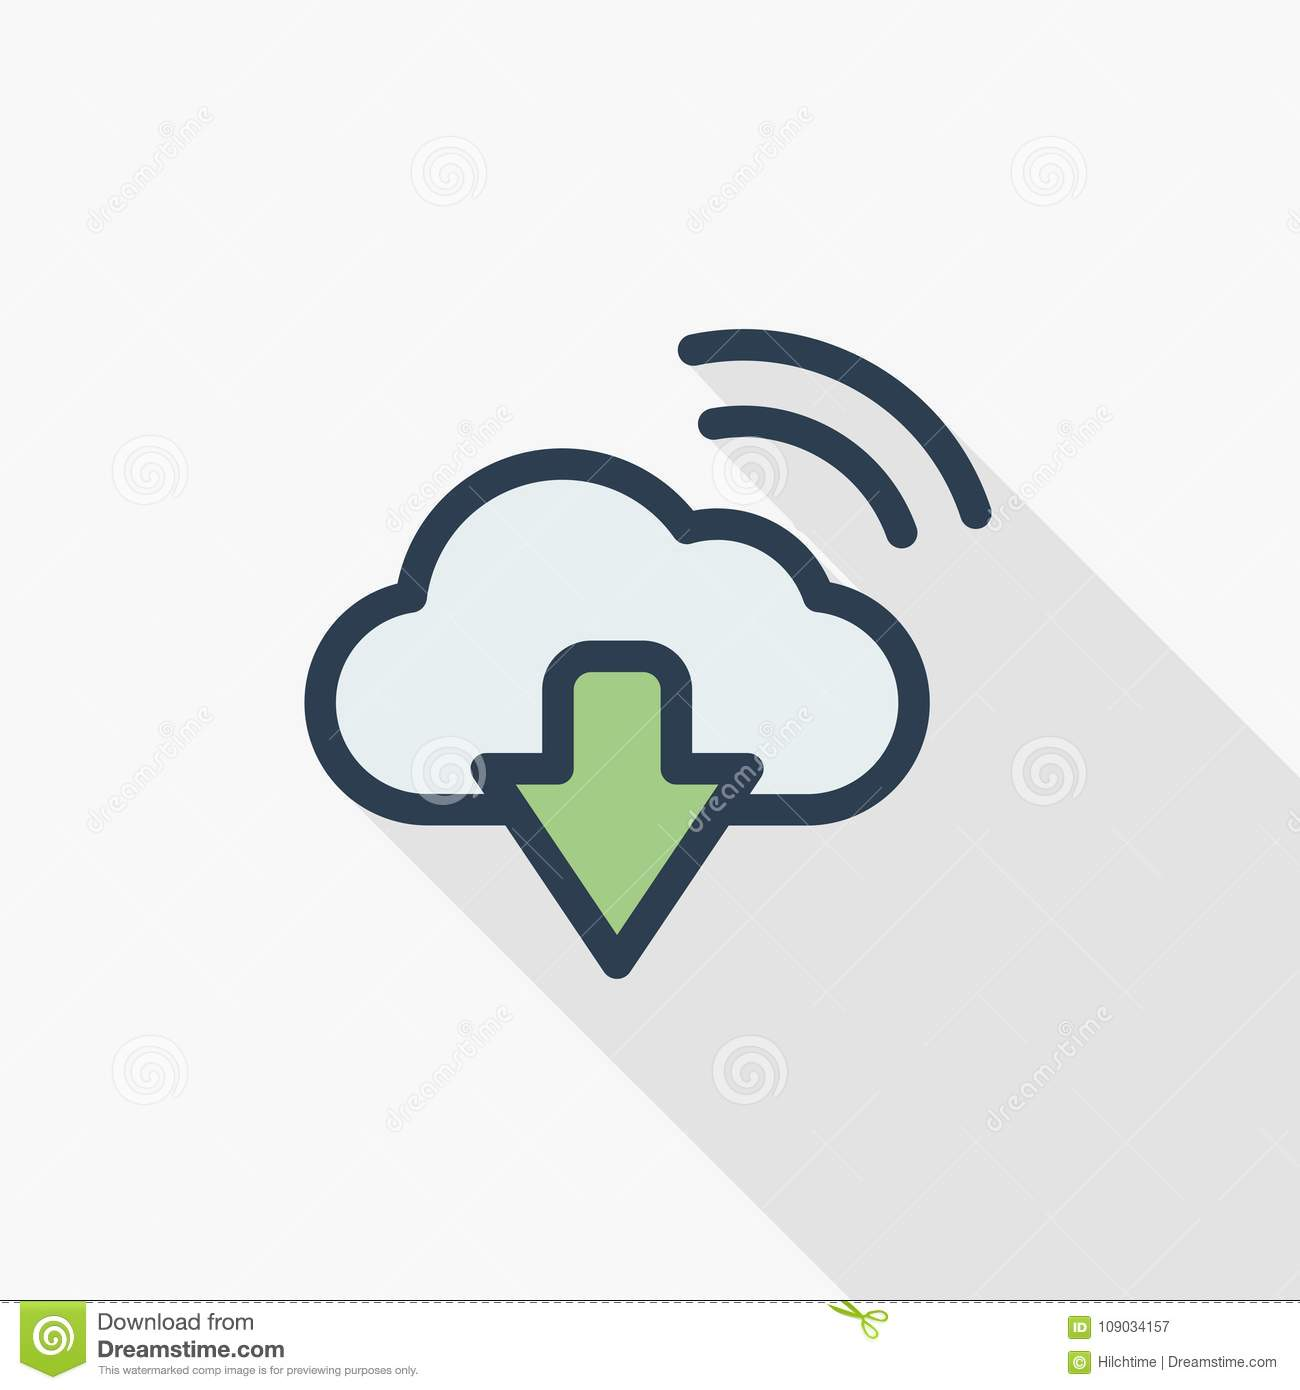 Cloud Download Computer Technology Thin Line Flat Color Icon